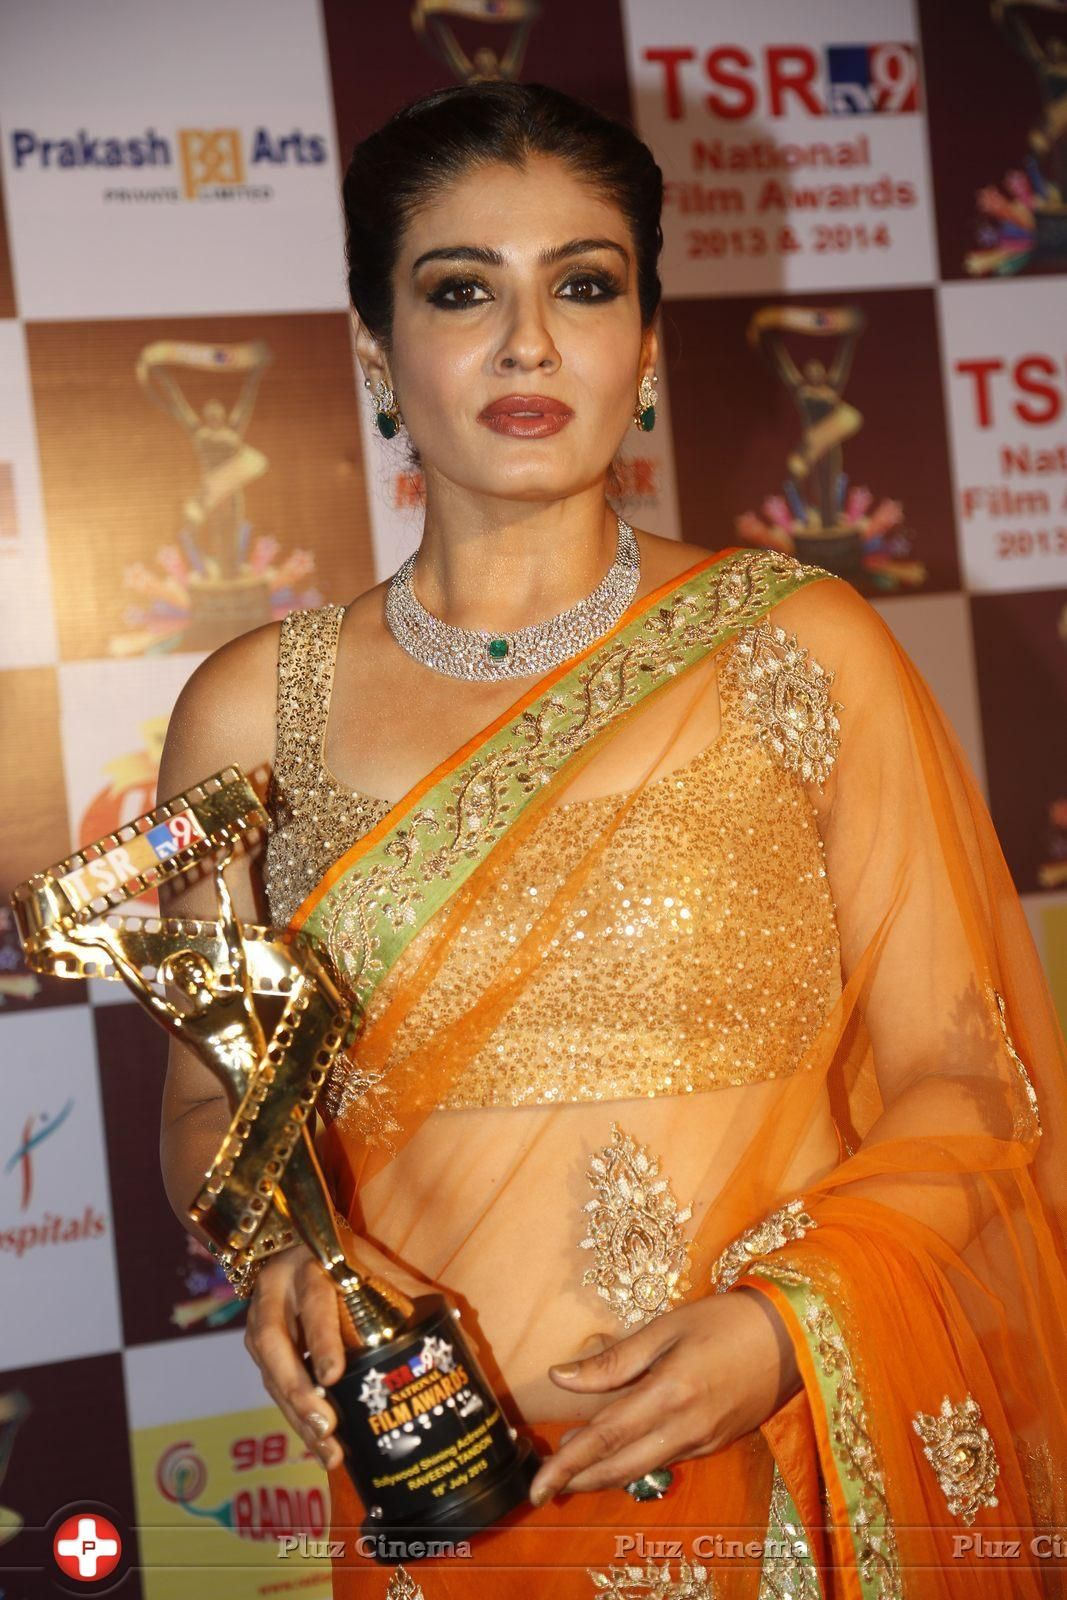 throat speciality Ost trifft Ost-Dating looking for